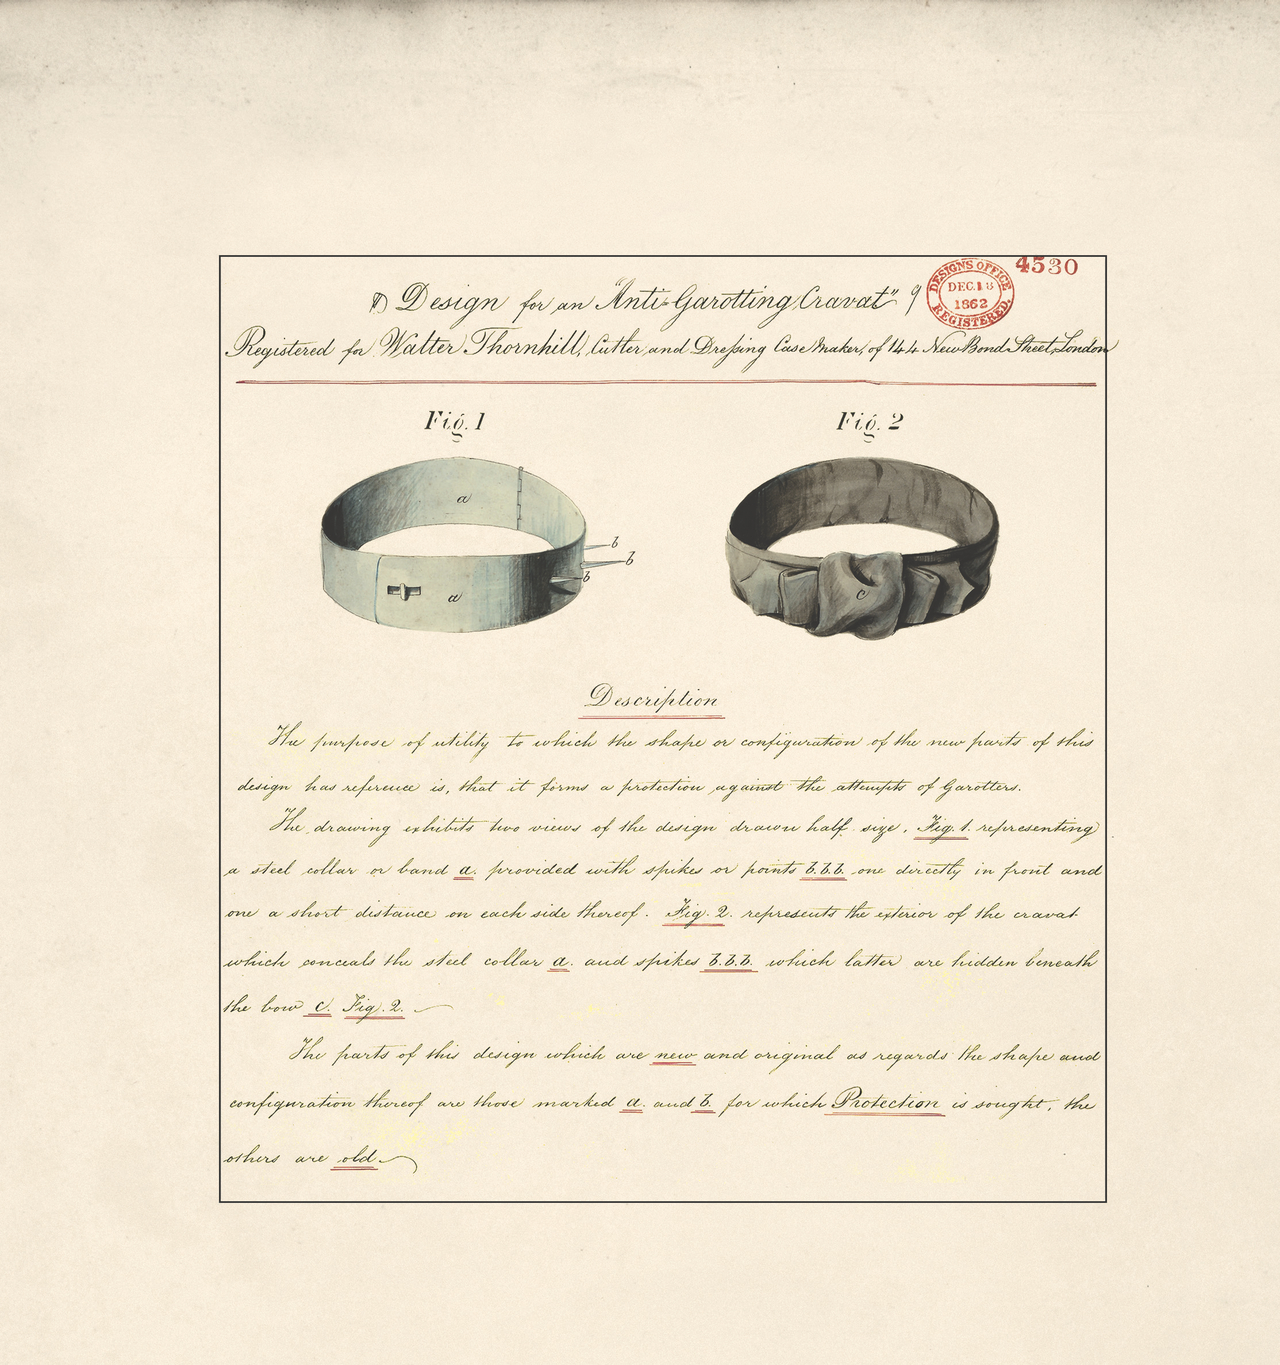 """Design for an """"Anti-Garotting Cravat"""" by Walter Thornhill, 1862 (BT 45/23) (The National Archives, London, England 2014. © 2014 Crown Copyright)"""